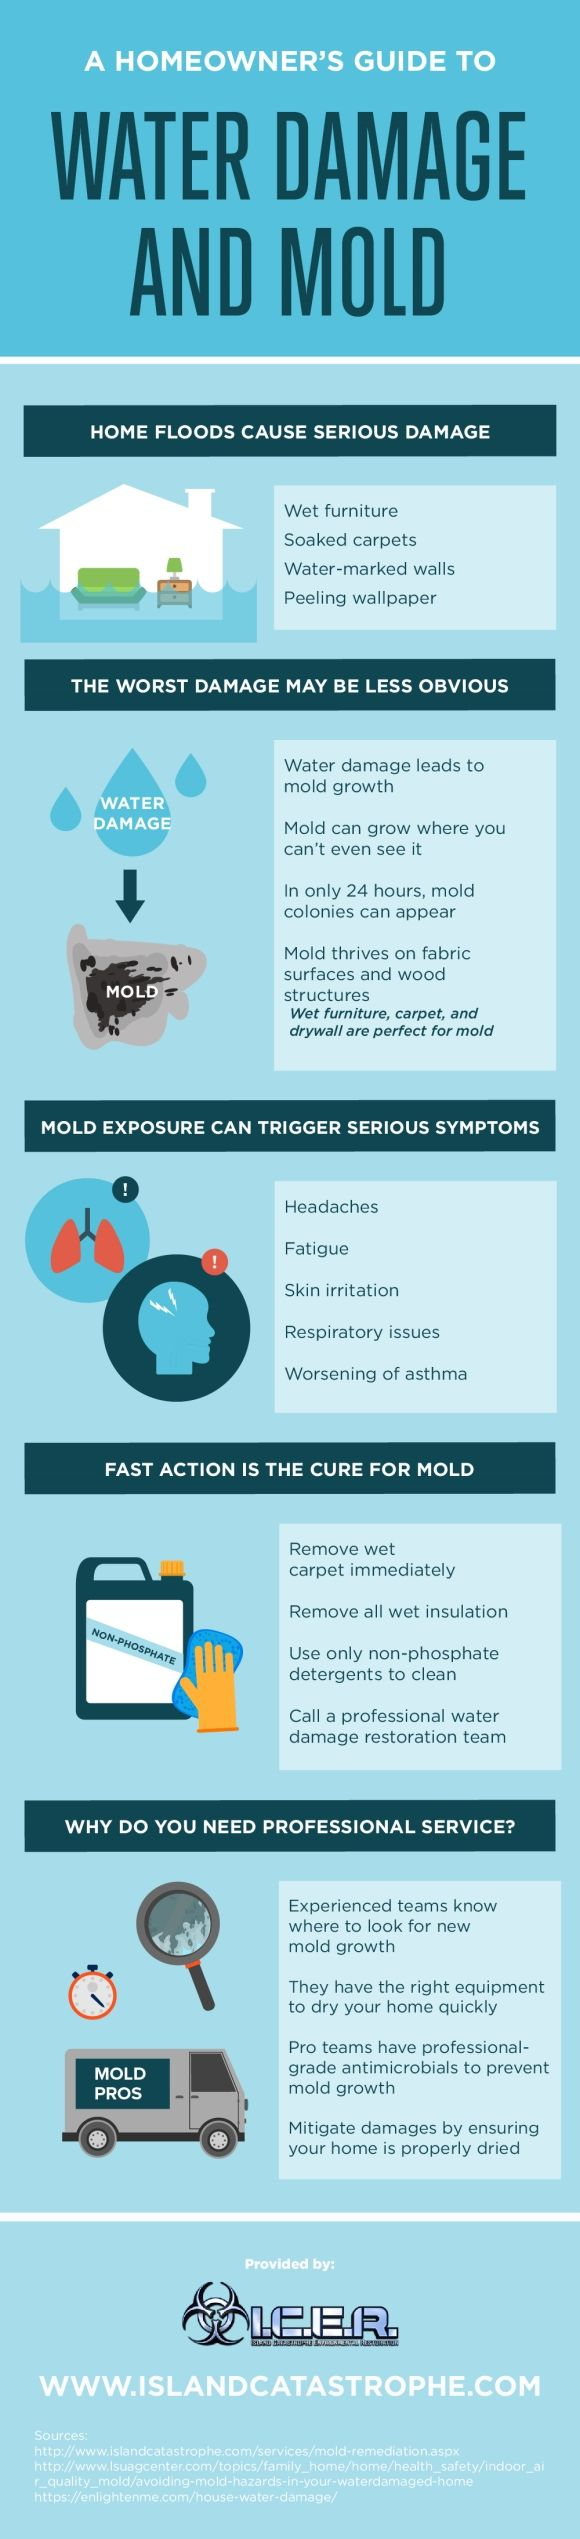 When it comes to removing mold, it's important to act as quickly as possible! Check out this infographic to learn how to keep mold and water damage out of the house.  #infographic #data visualization #mold remediation #basement waterproofing #mold removal #waterproofing basement